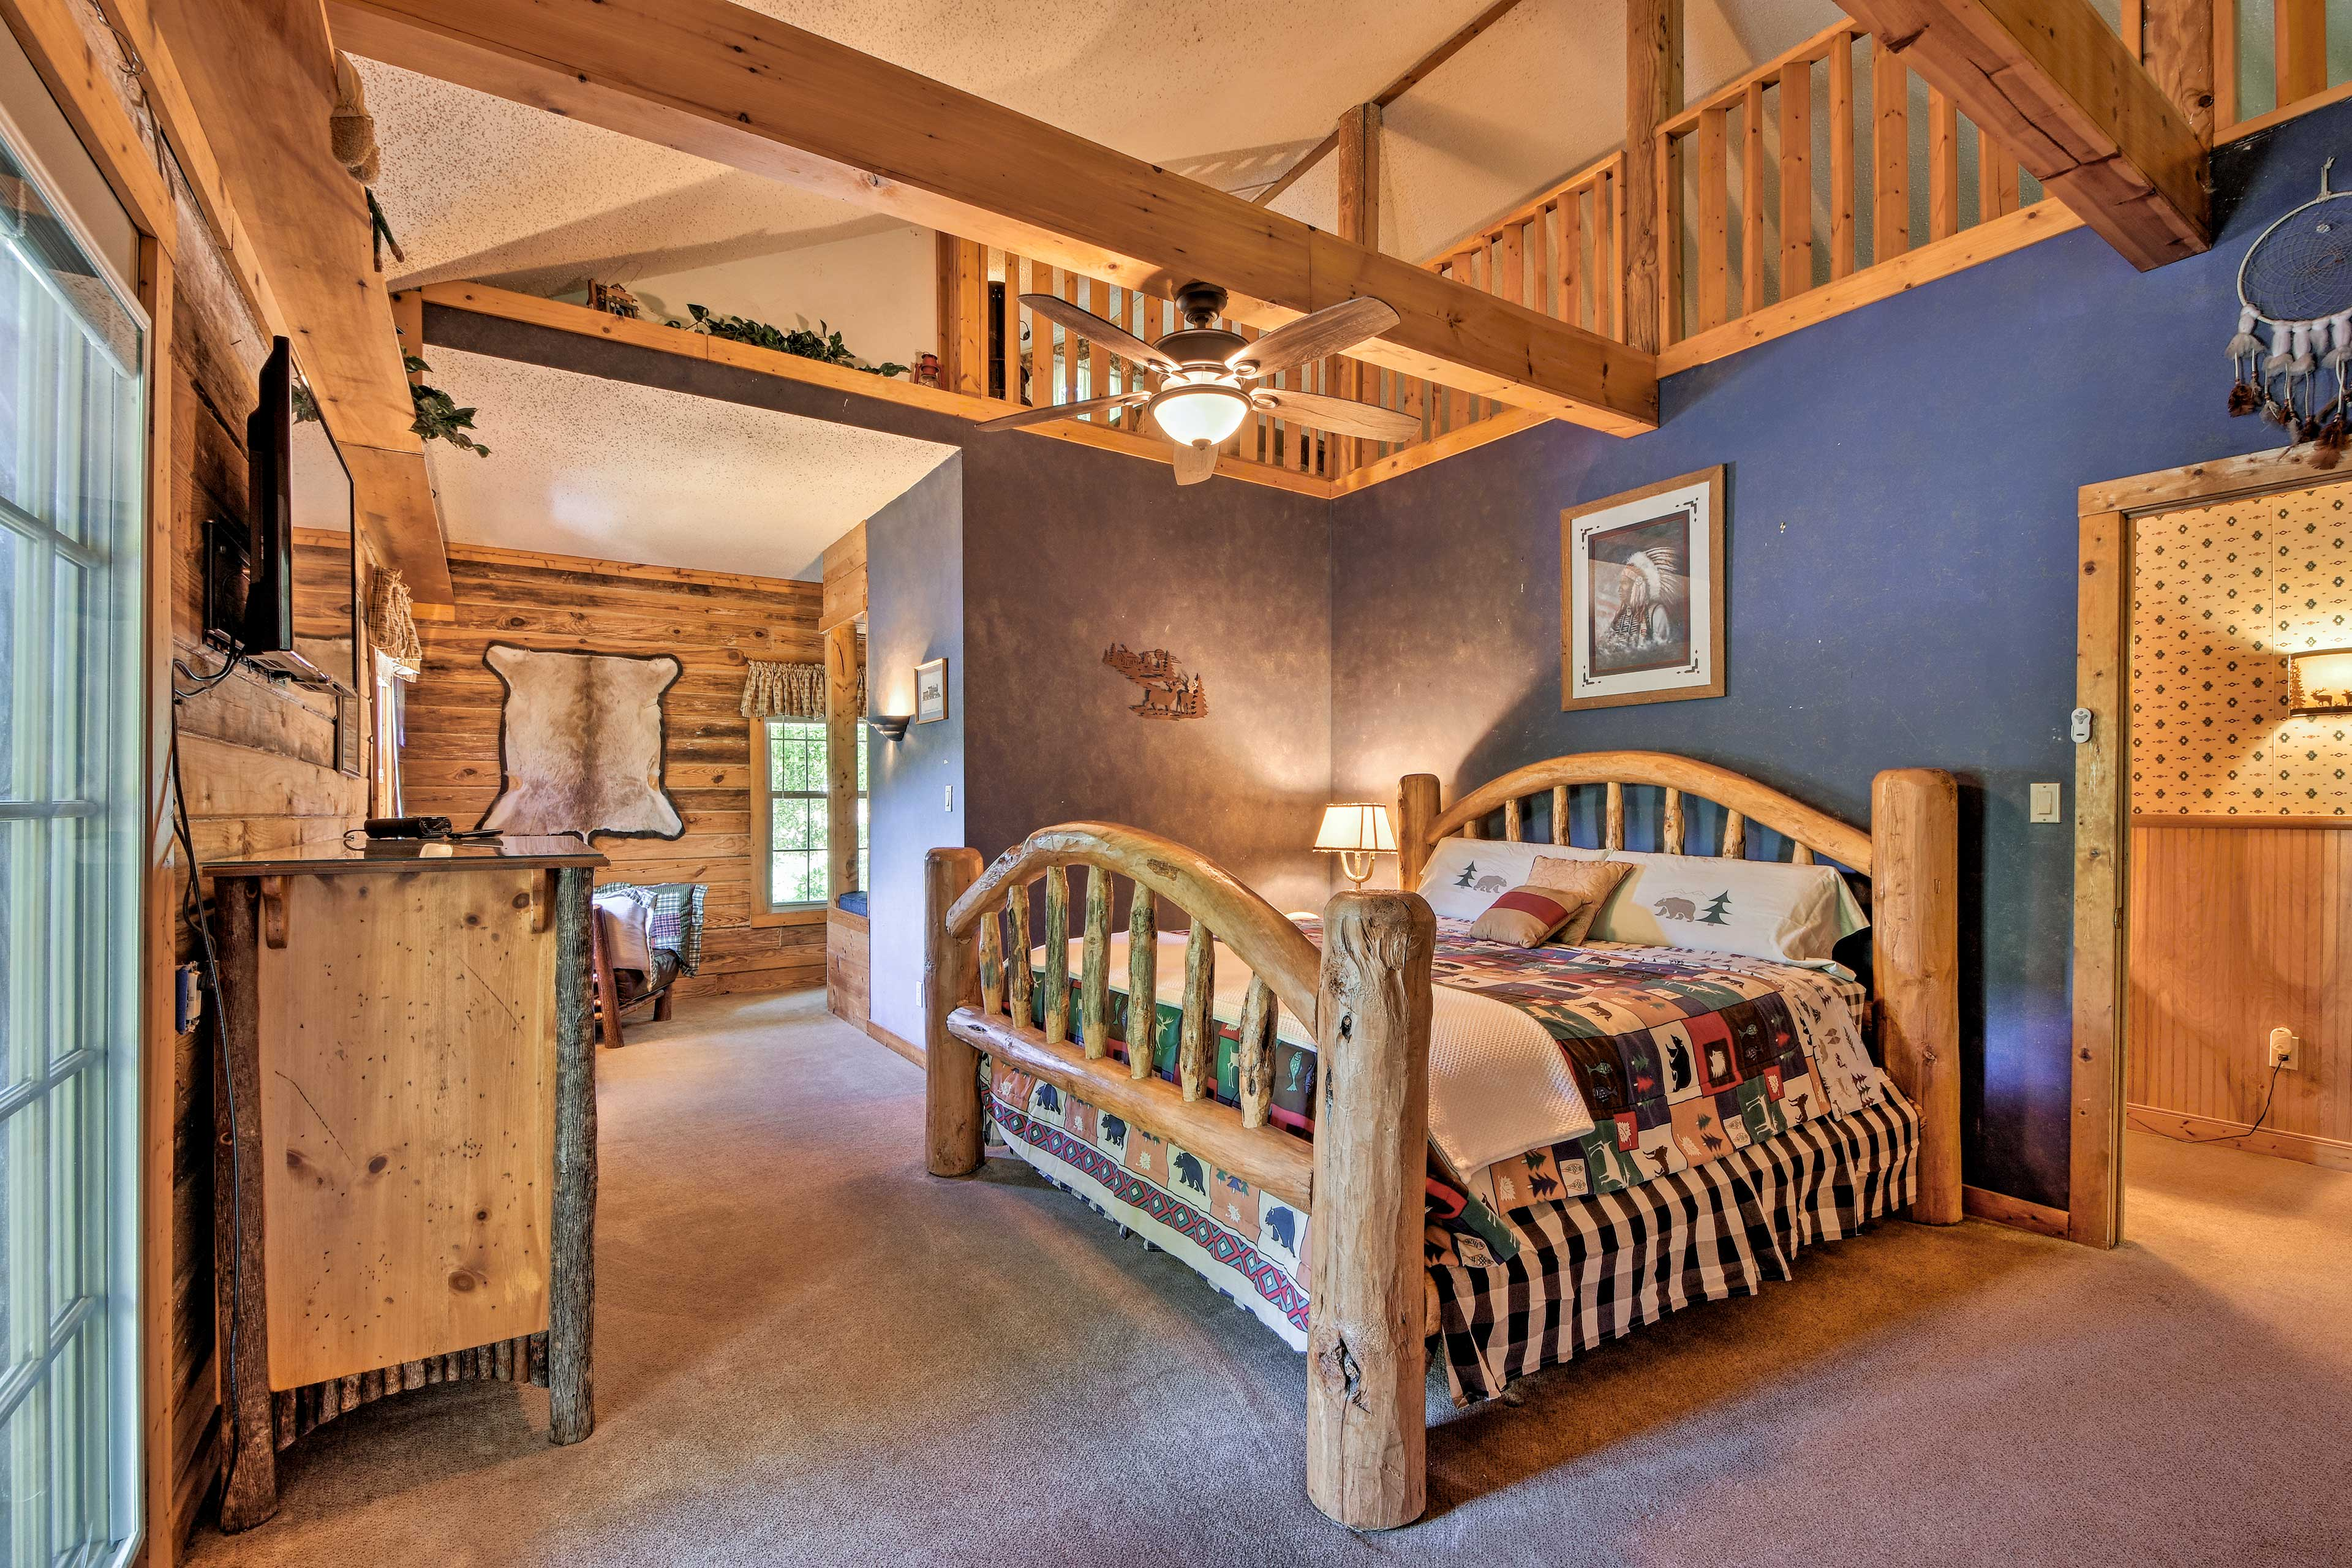 The head of the house hold is sure to love this epic master bedroom.